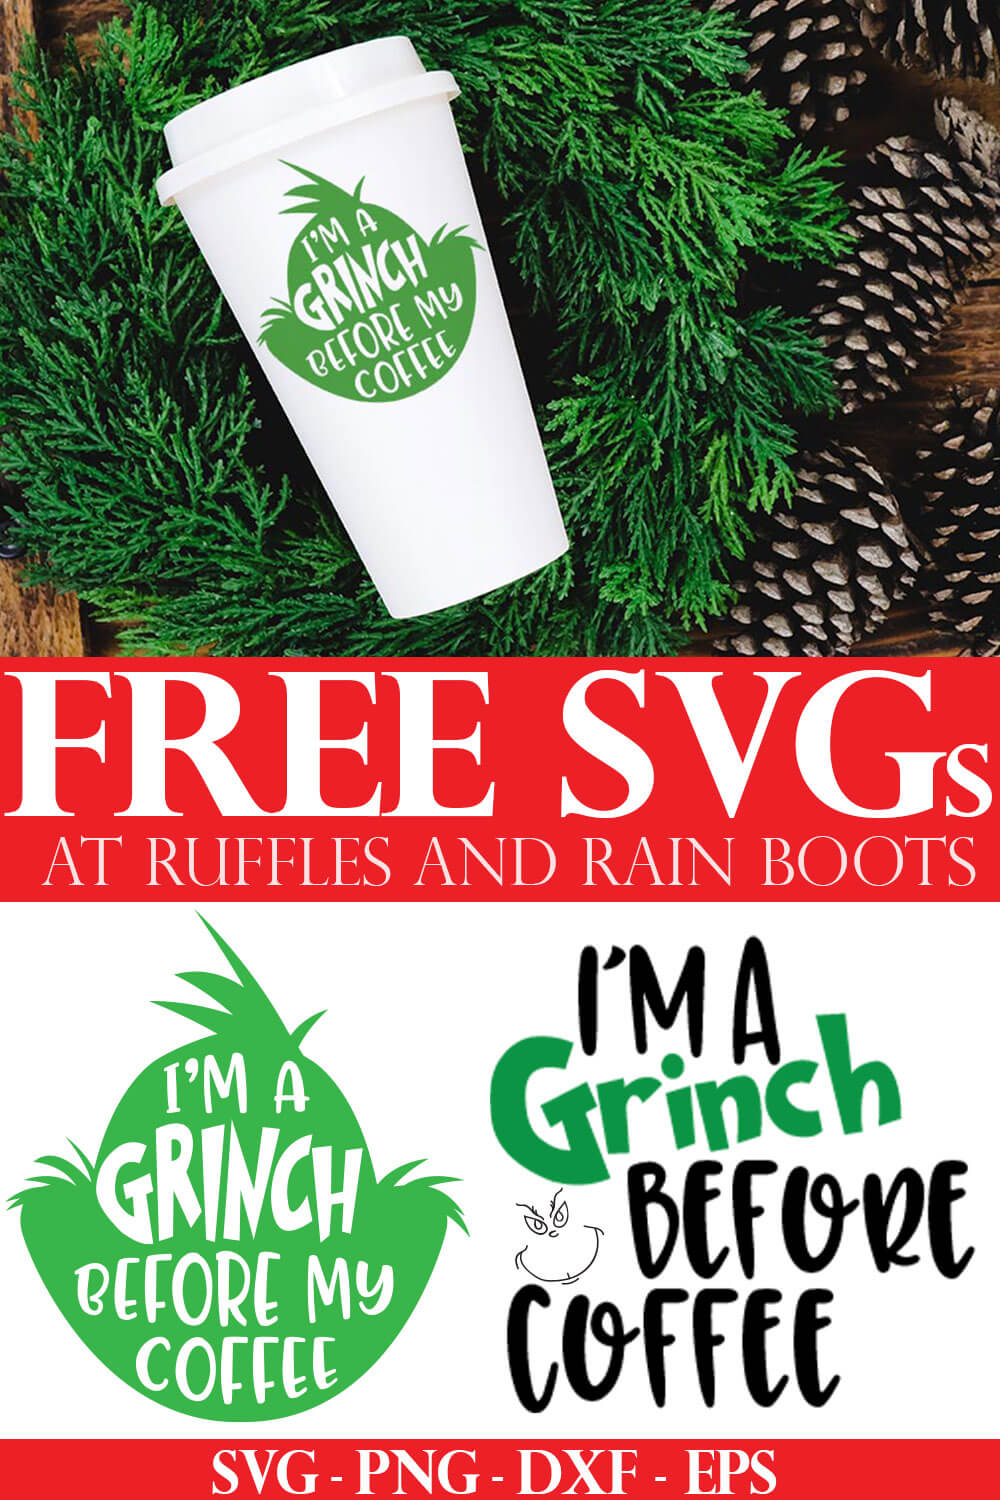 grinch before coffee svg on white coffee tumbler on holiday background with text which reads free svg for cricut and silhouette